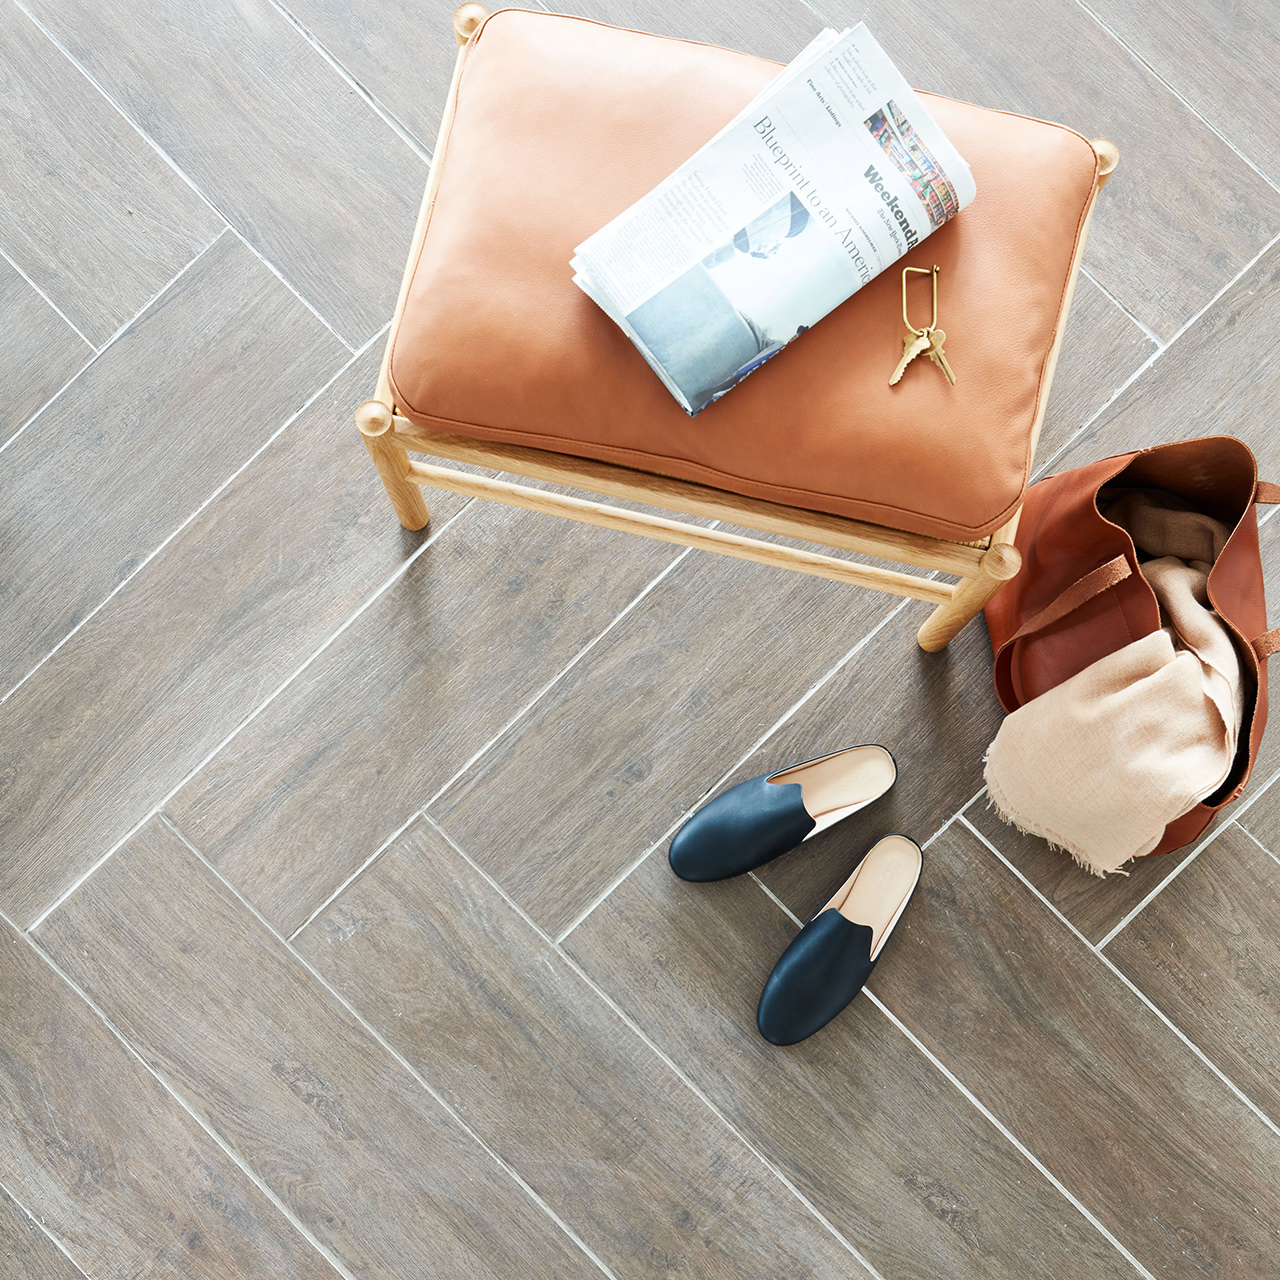 tile floors wood hand bag with shoes